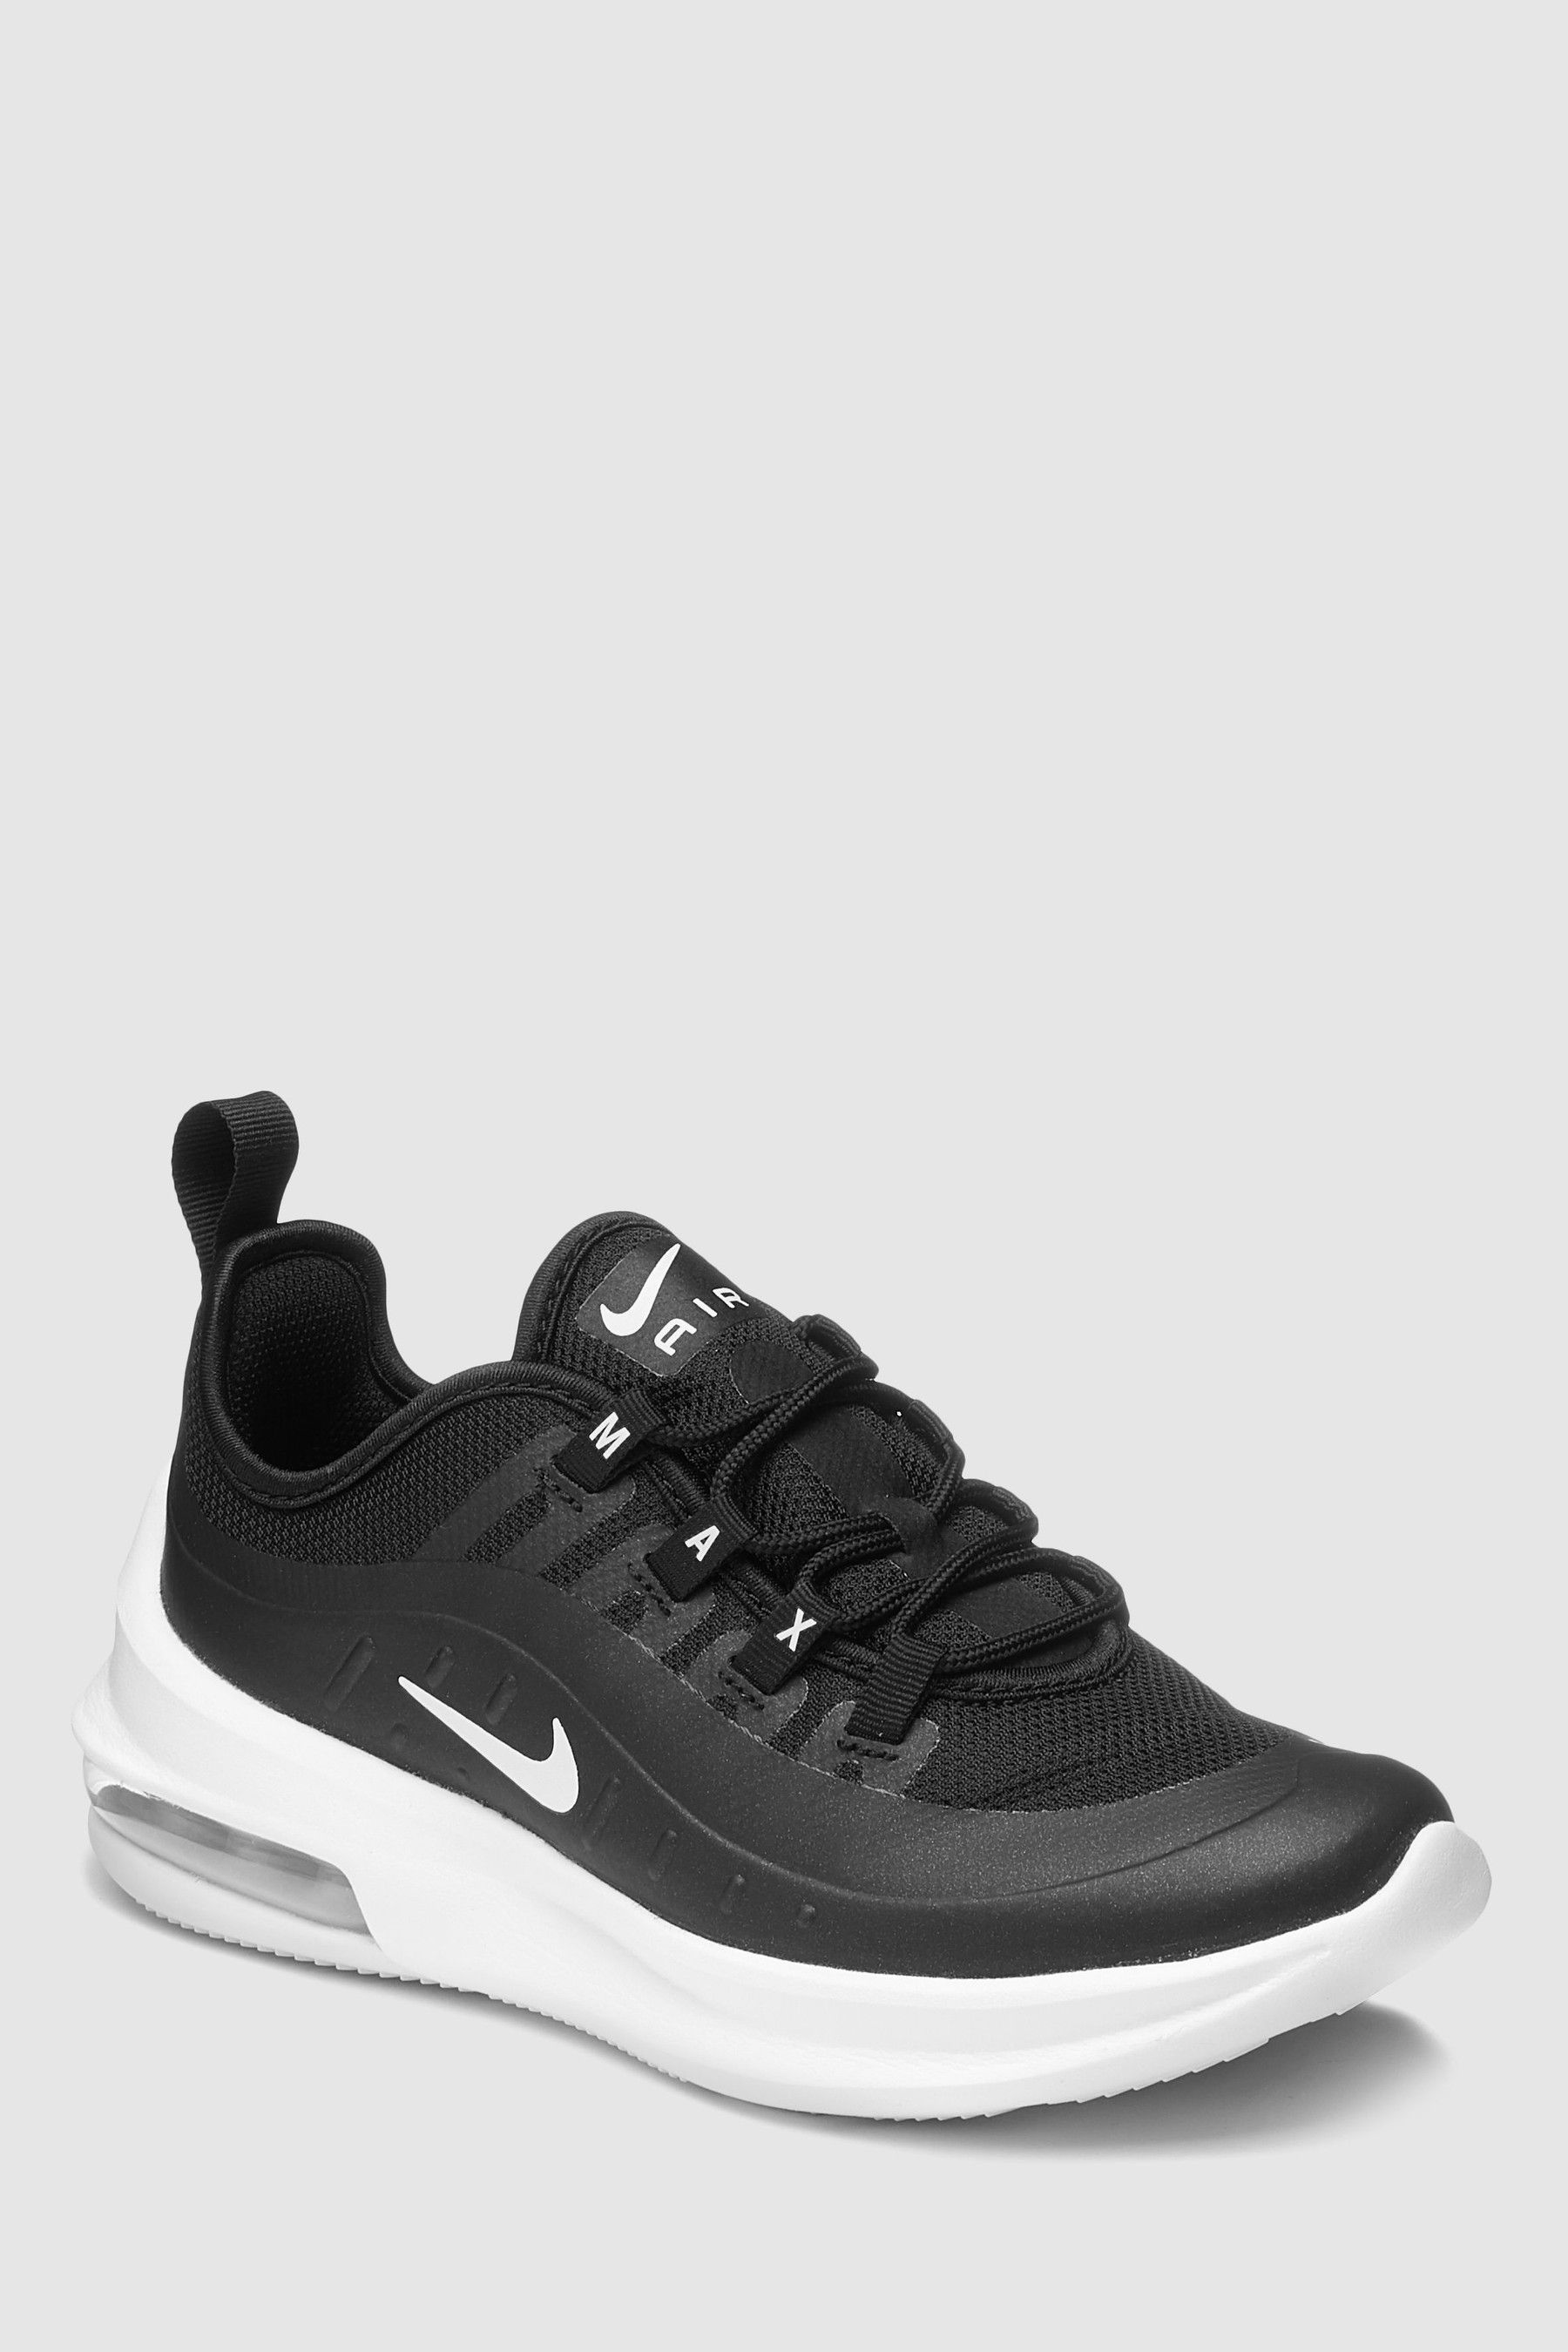 Boys Nike Air Max Axis Junior Trainers - Black | Nike air ...